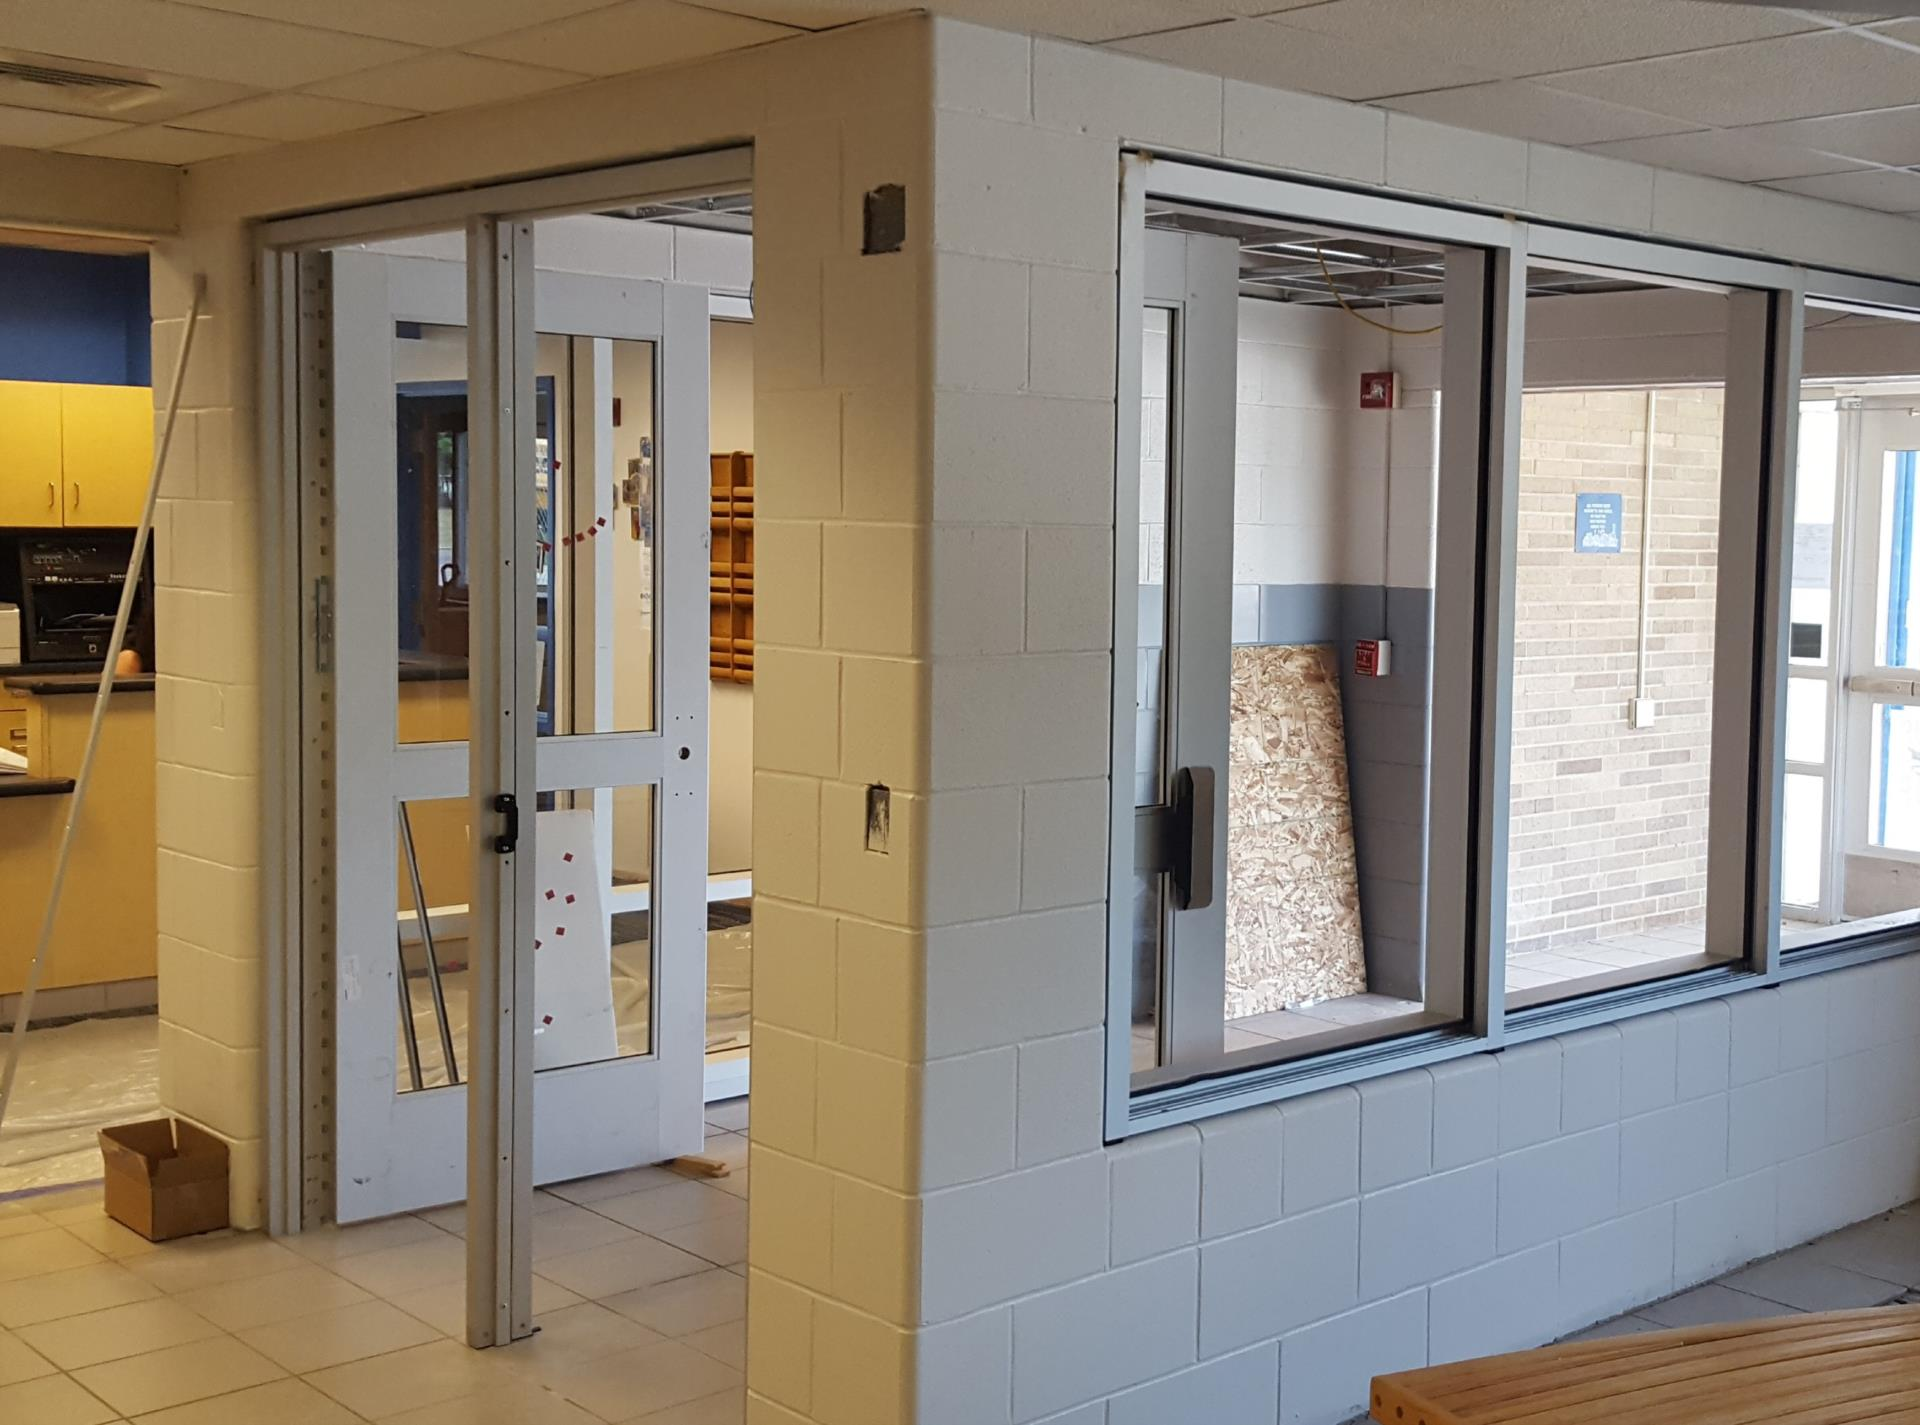 New Middle School Security Entrance